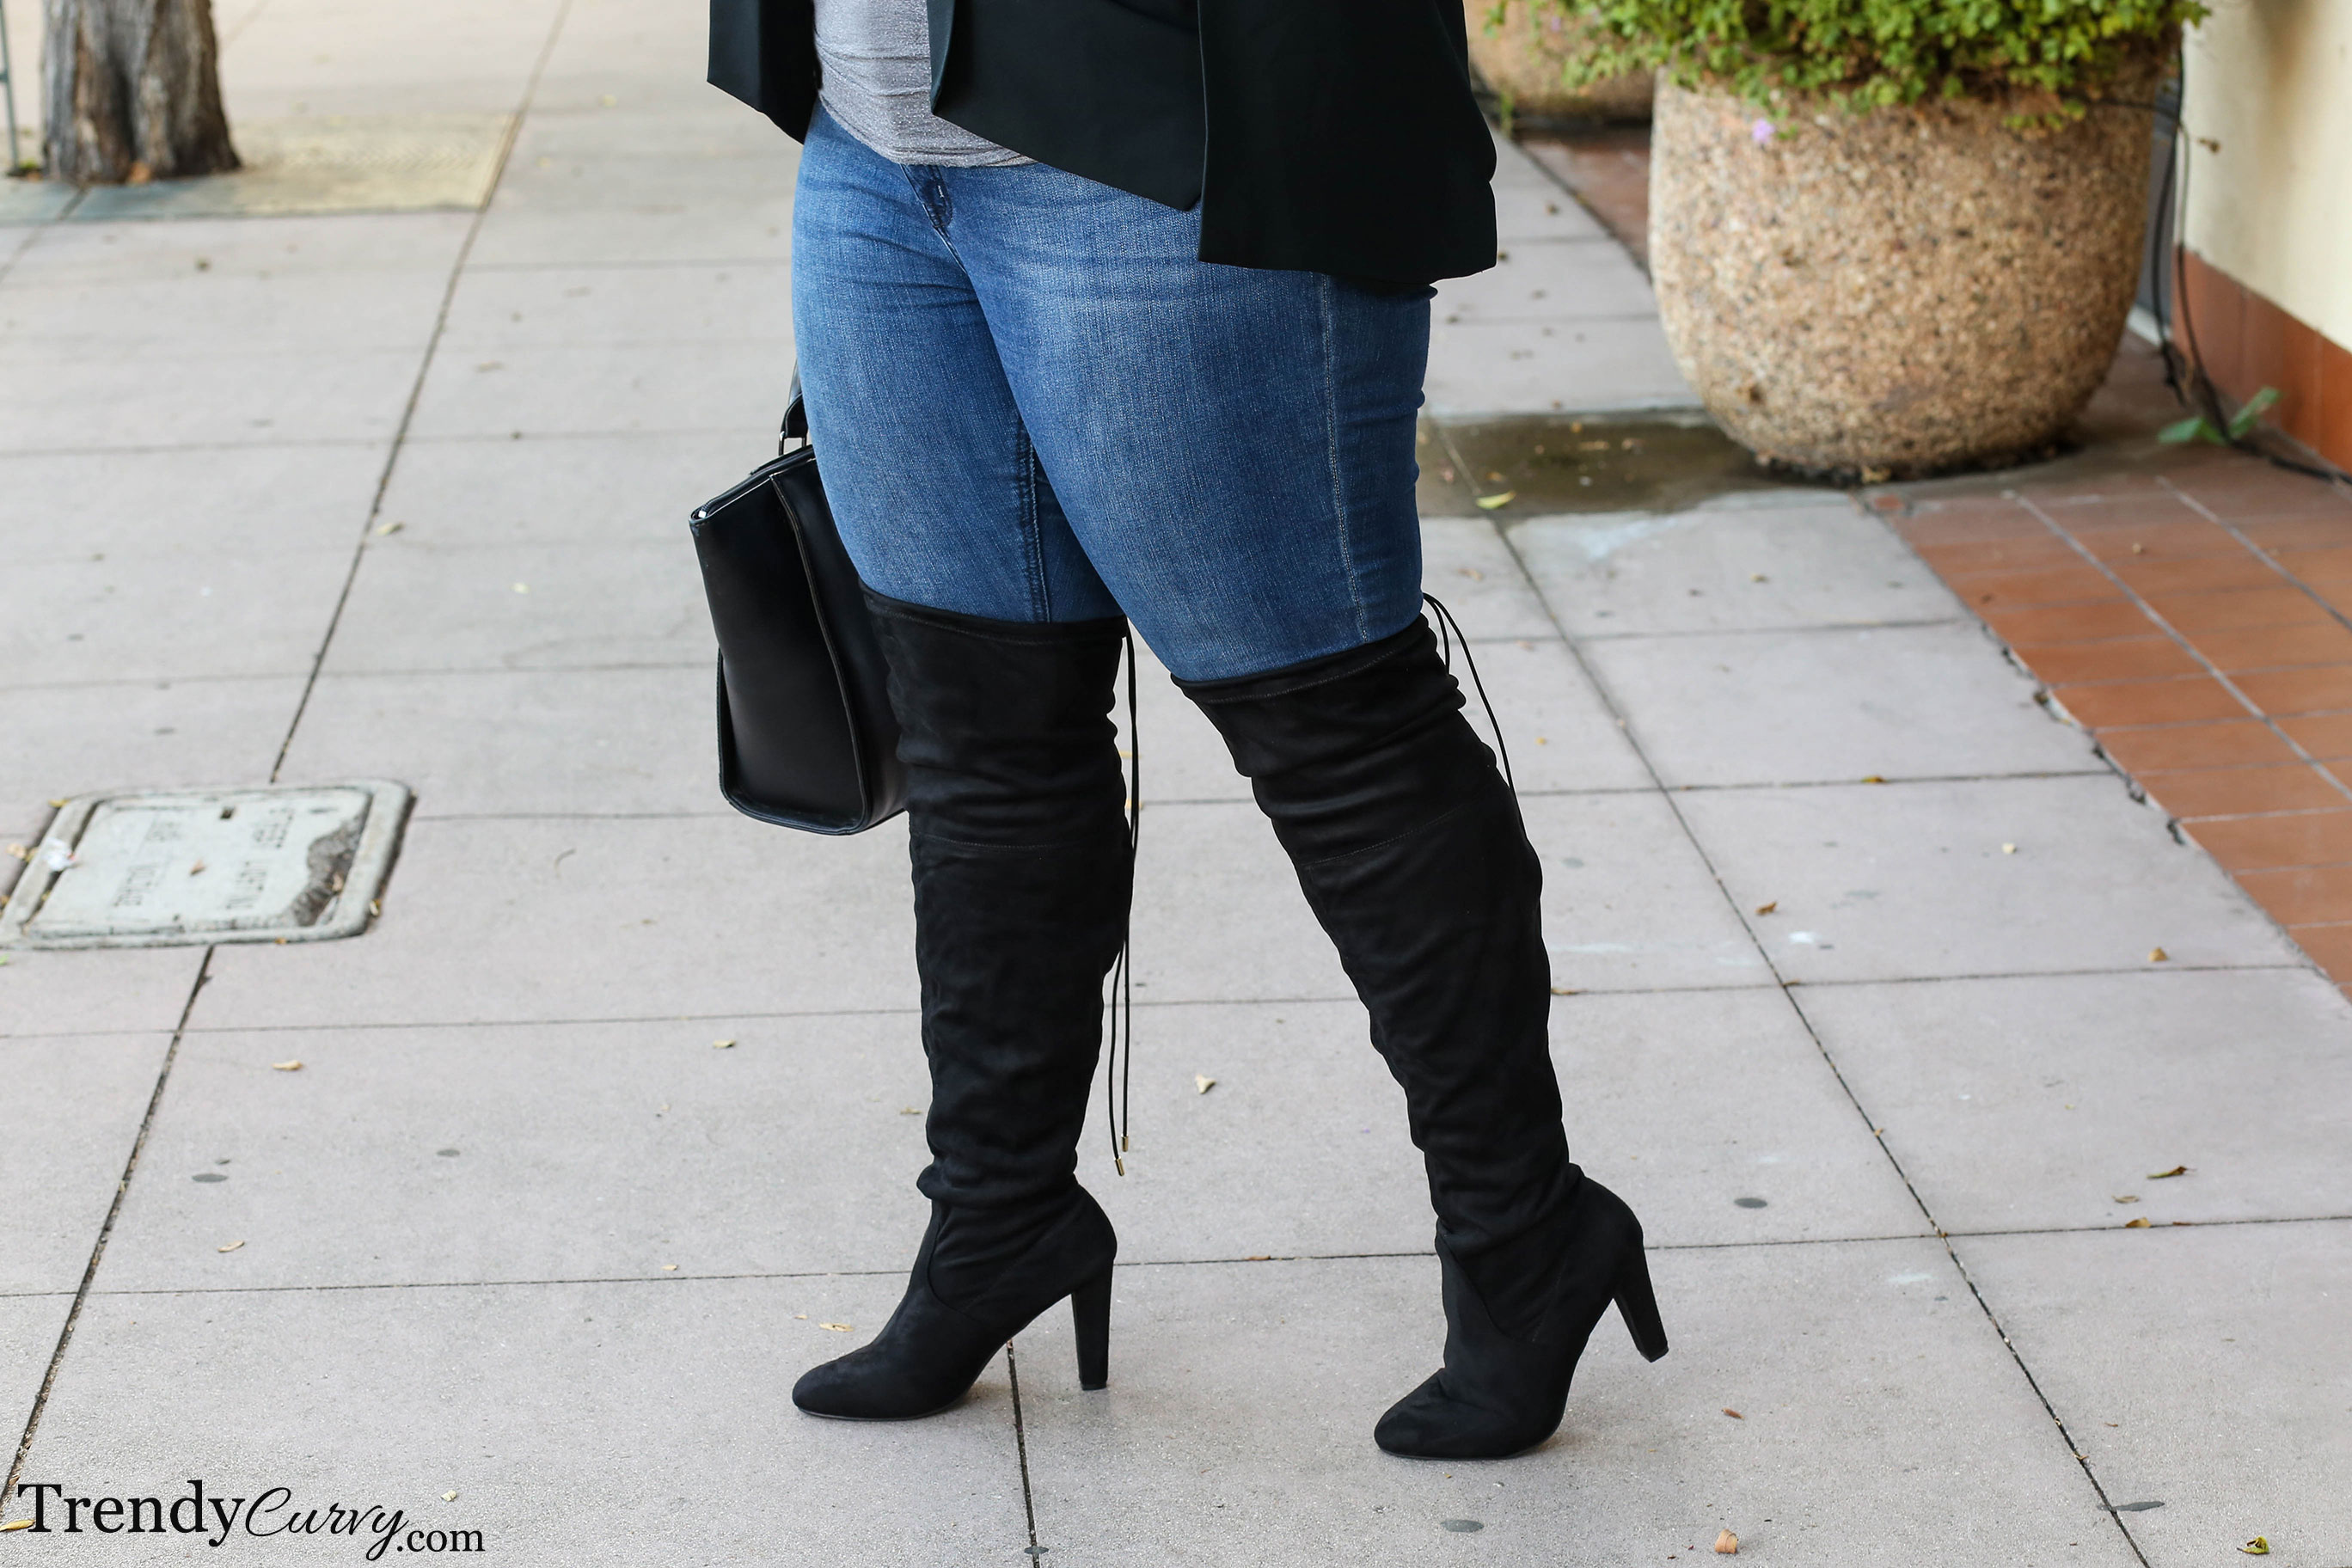 b12da2a0995 I don t know about you but I have been on the hunt for over-the-knee boots  for quite some time. I